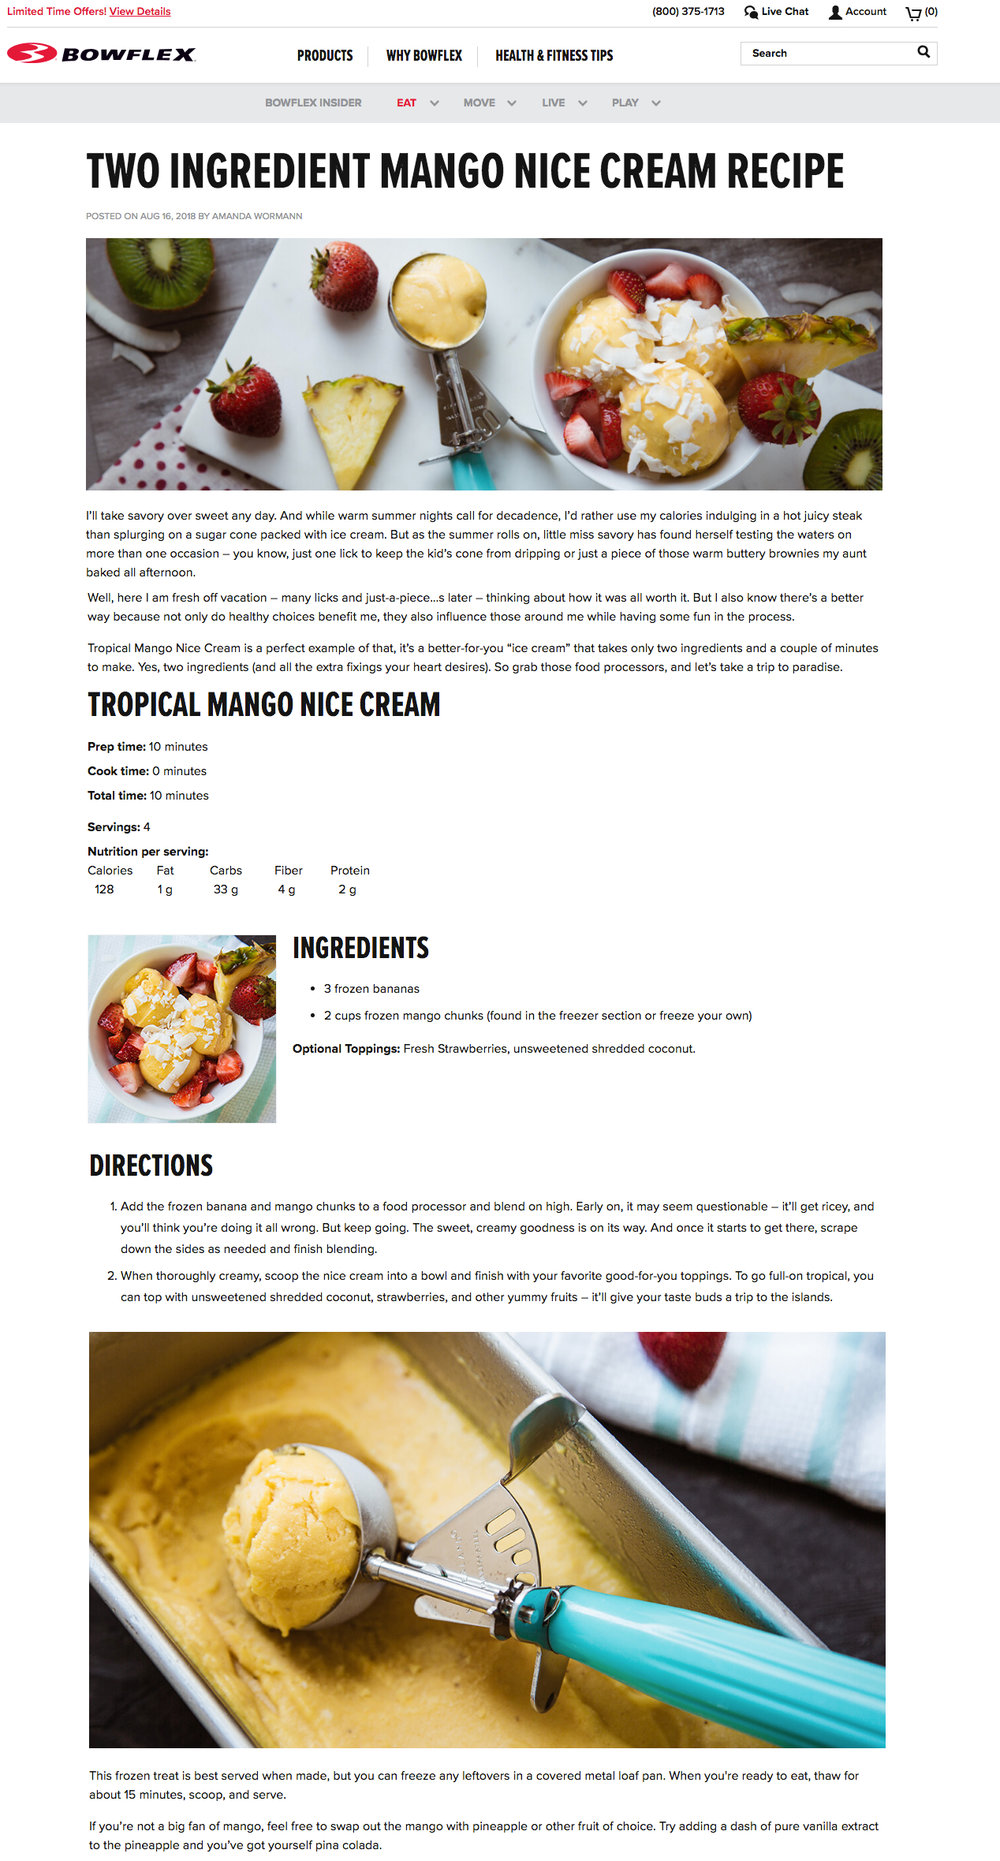 Bowflex Content - Amanda Wormann - Mango Nice Cream Recipe.jpg